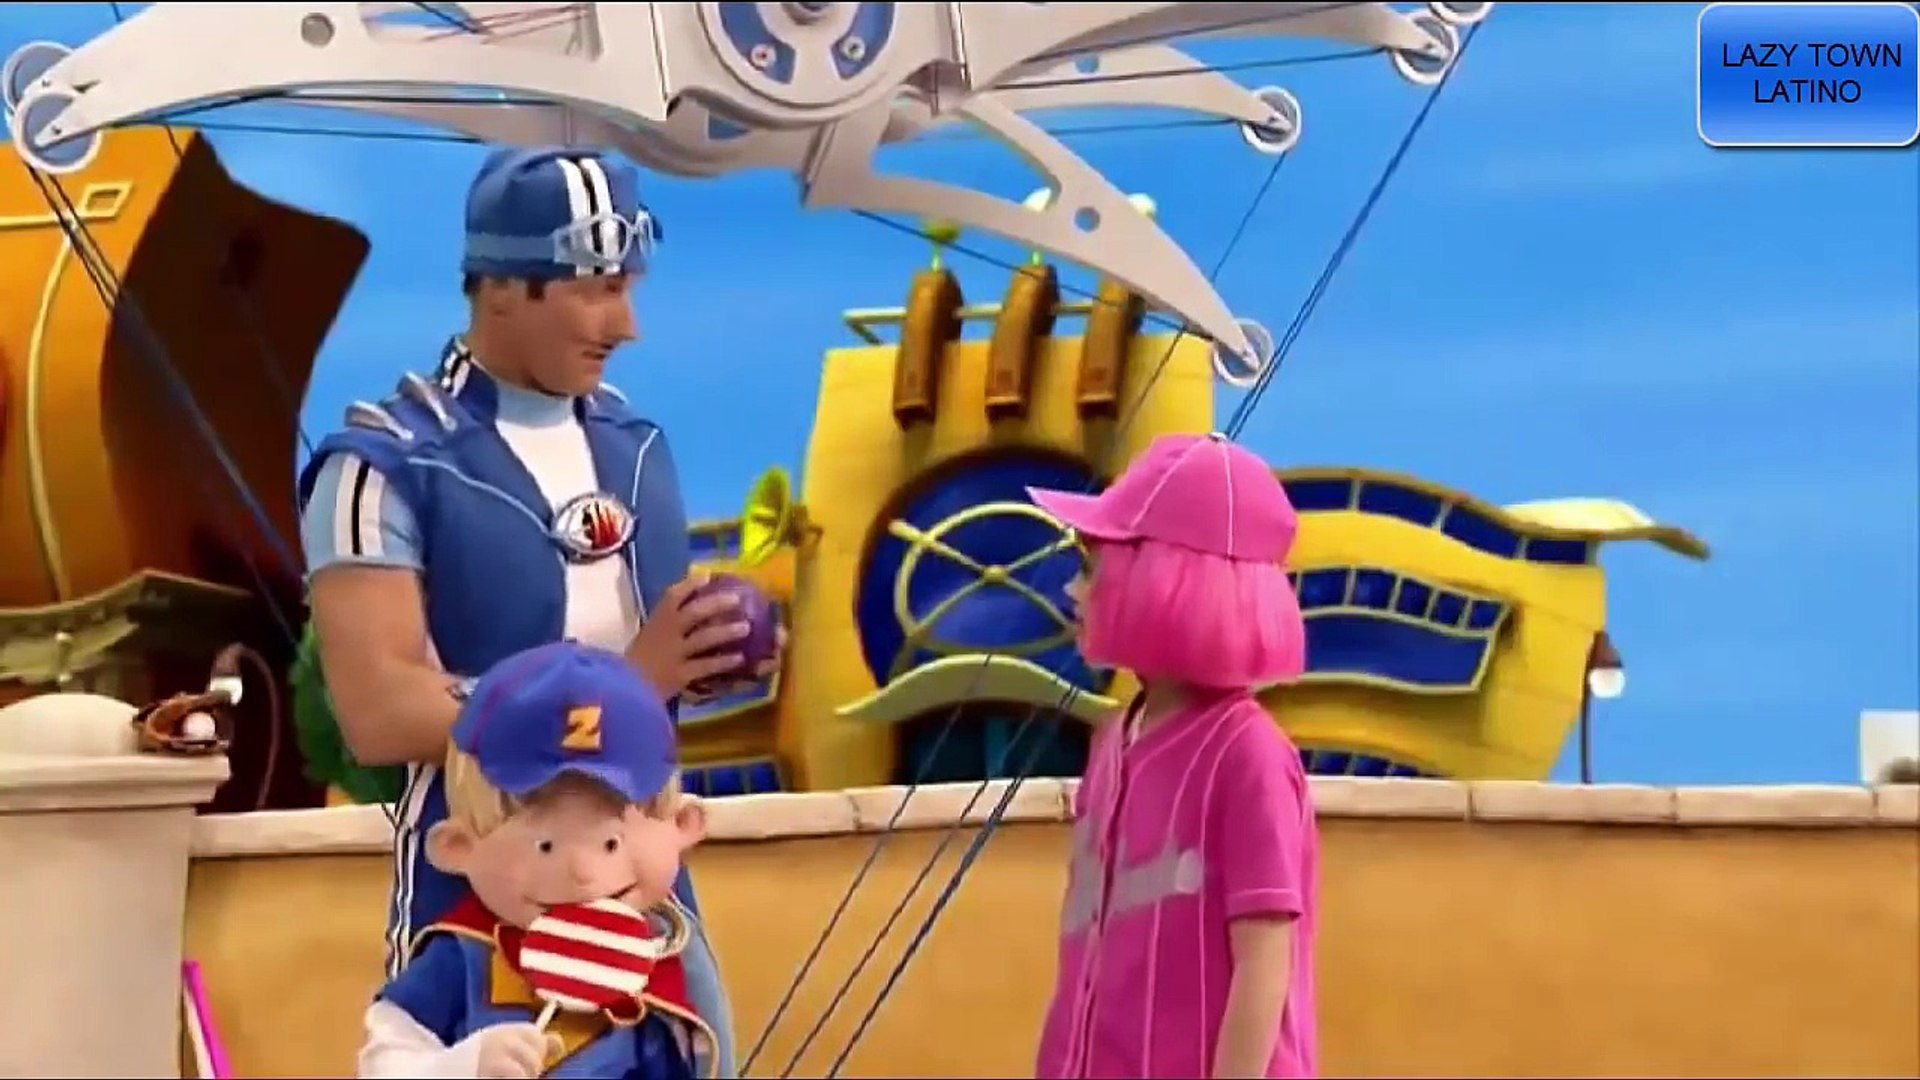 Lazy Town Capitulo 5 - Insomnio En Lazy Town - Latino HD - Dailymotion Video